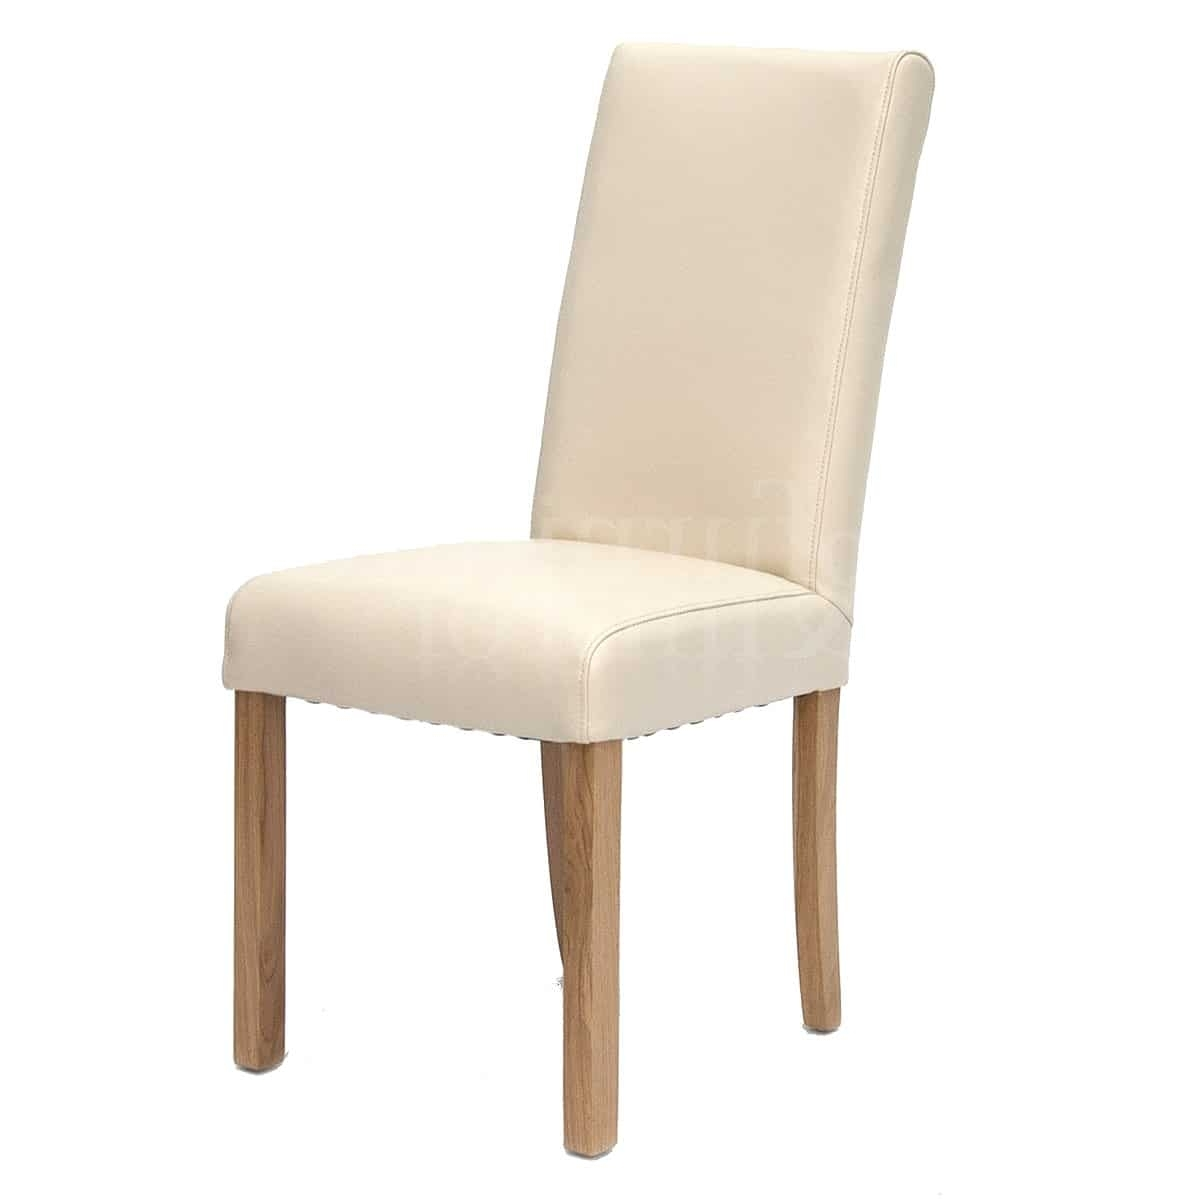 Marina Ivory Oak Leather Dining Chair – Furniture And Mirror Intended For Preferred Oak Leather Dining Chairs (View 17 of 25)